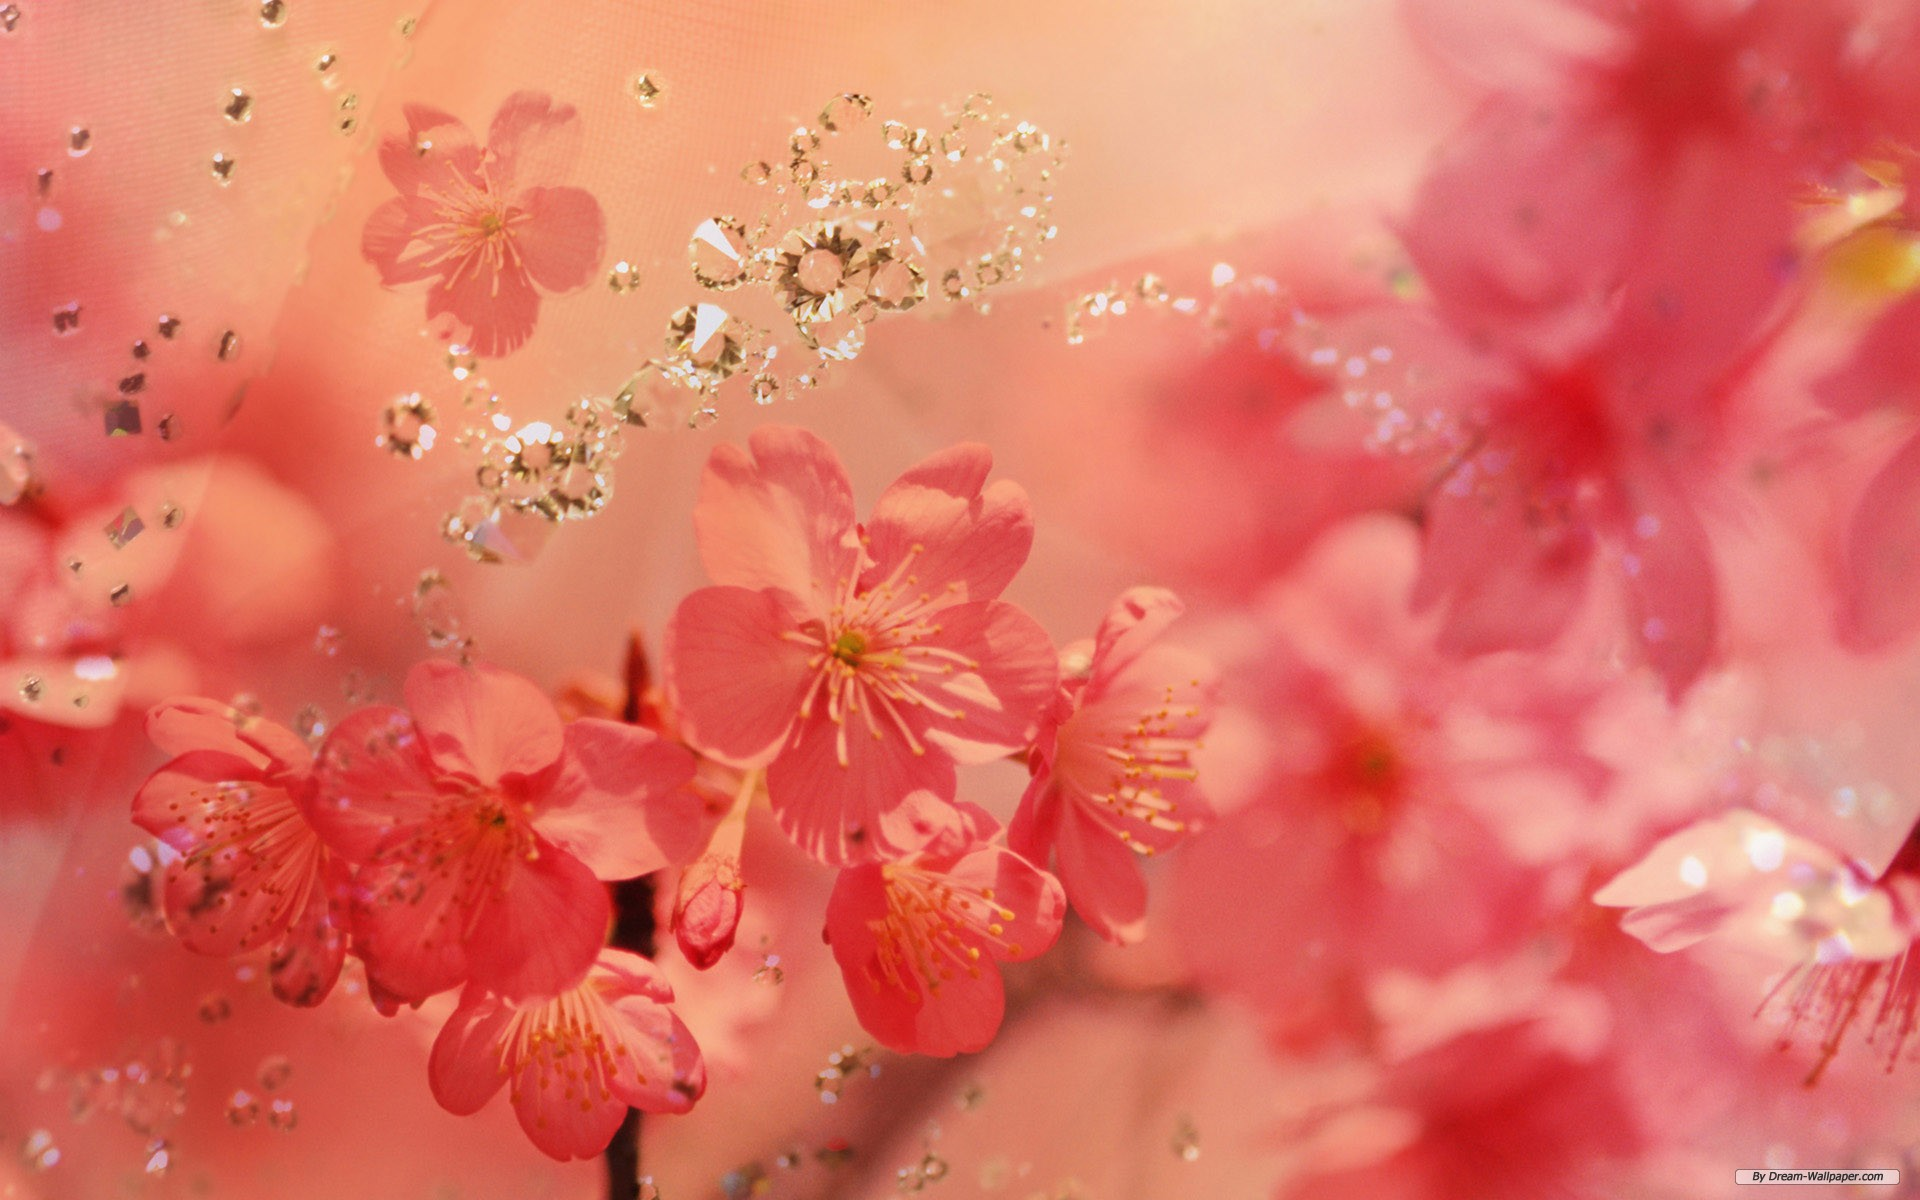 Spring flower wallpapers wide screen wallpaper 1080p2k4k spring flower wallpapers mightylinksfo